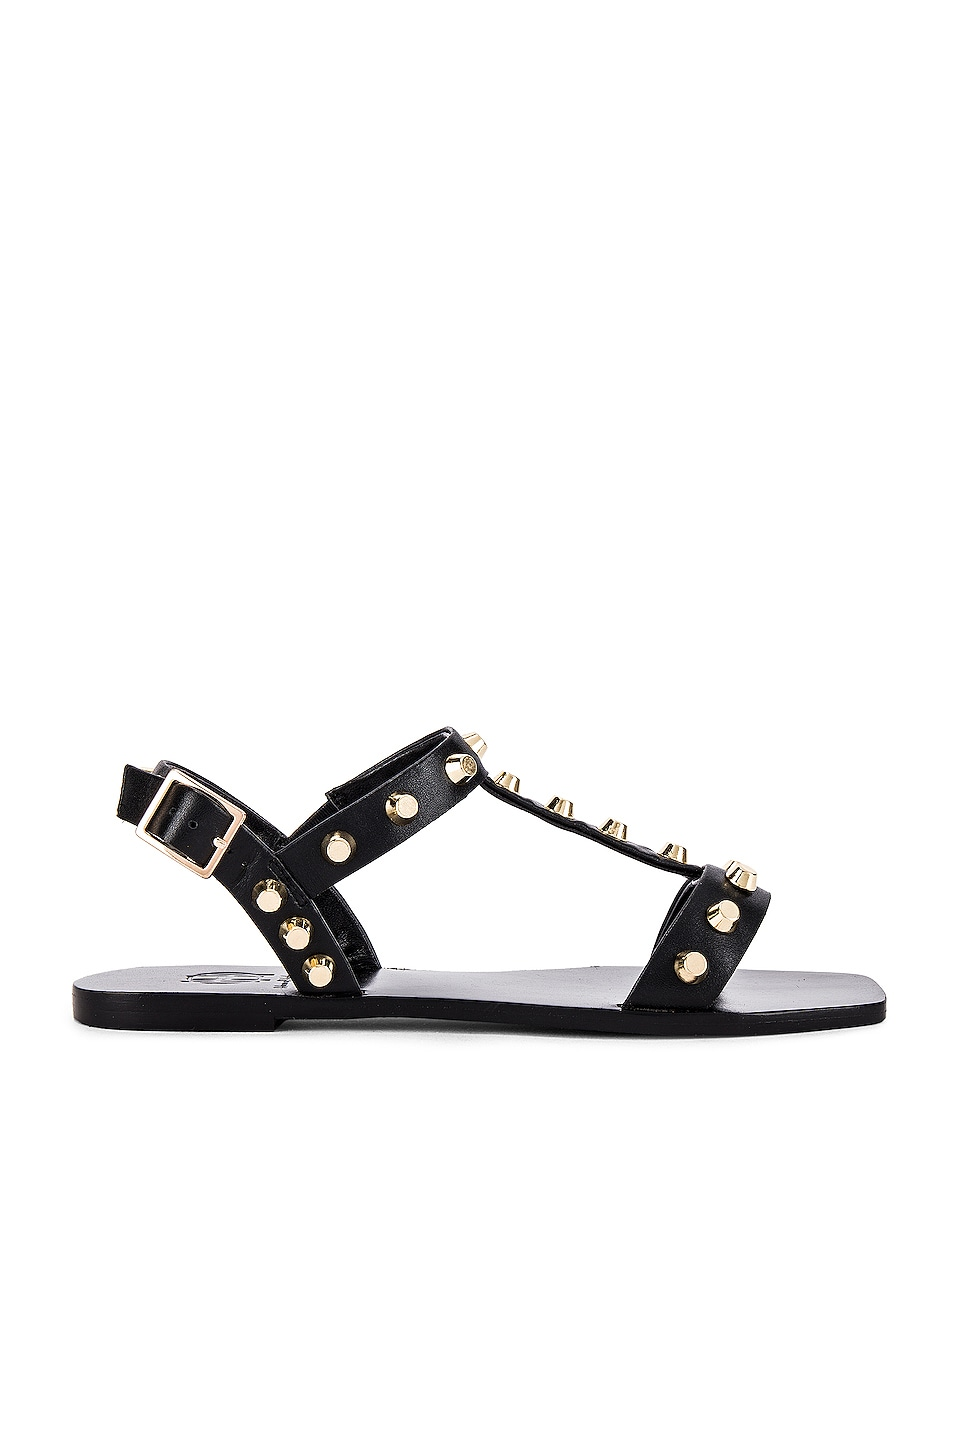 House of Harlow 1960 X REVOLVE Suzi Sandal in Black